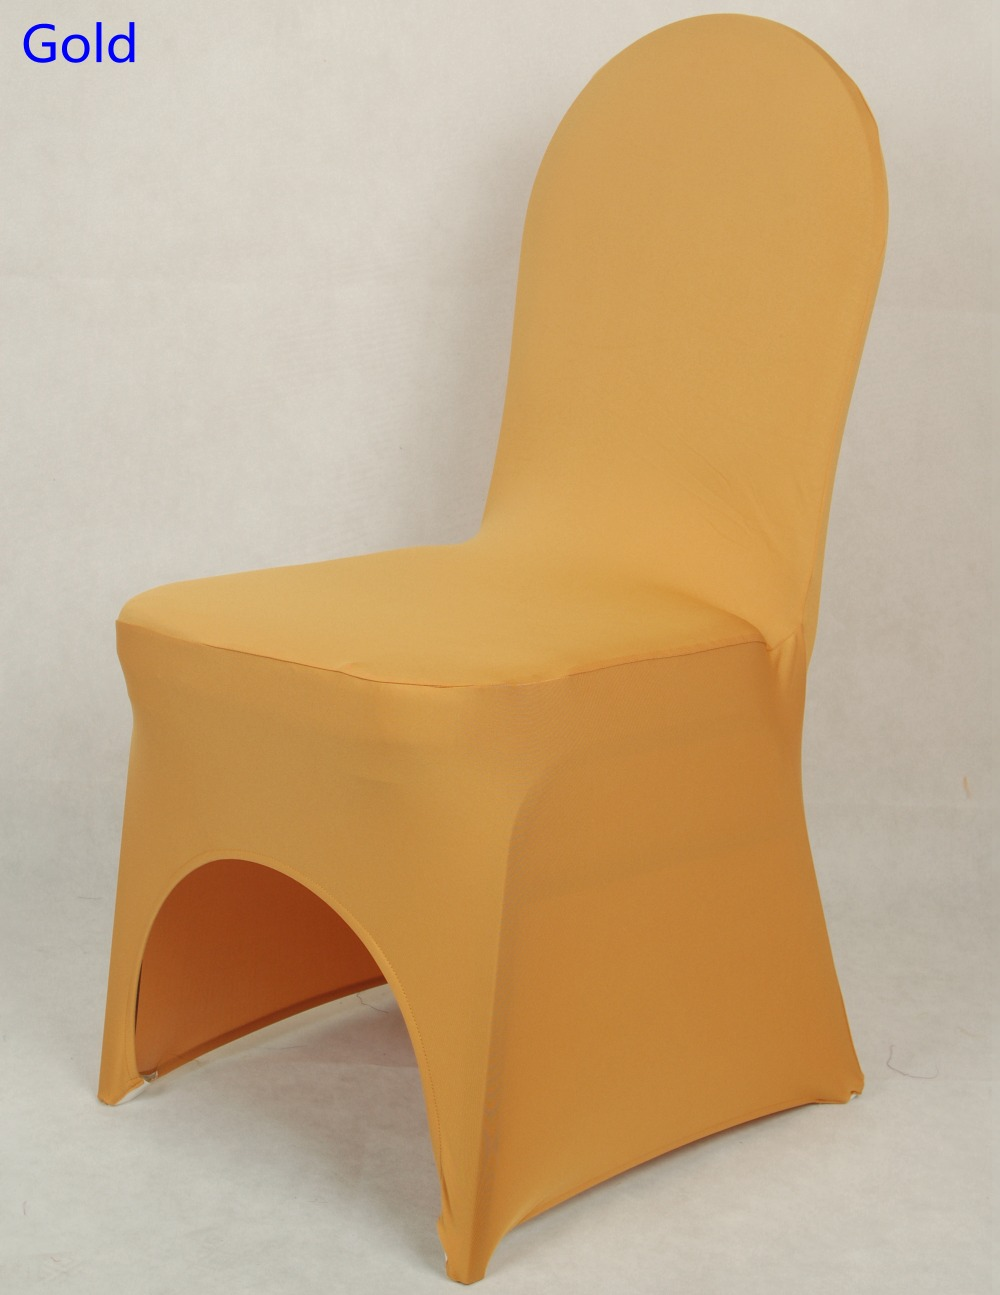 Gold Colour chair covers spandex chair covers china